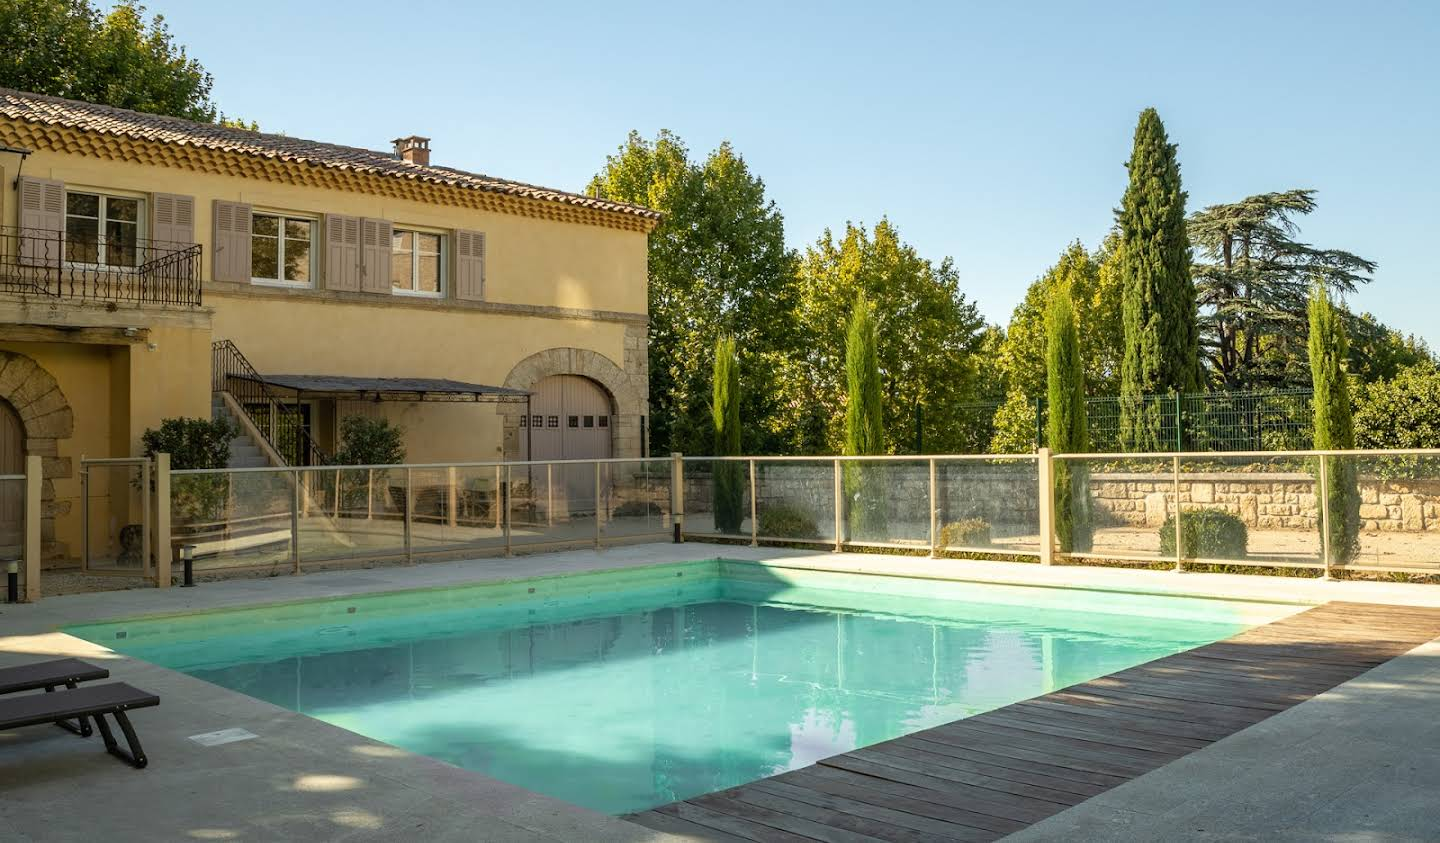 Property with pool and garden La Roque-d'Anthéron